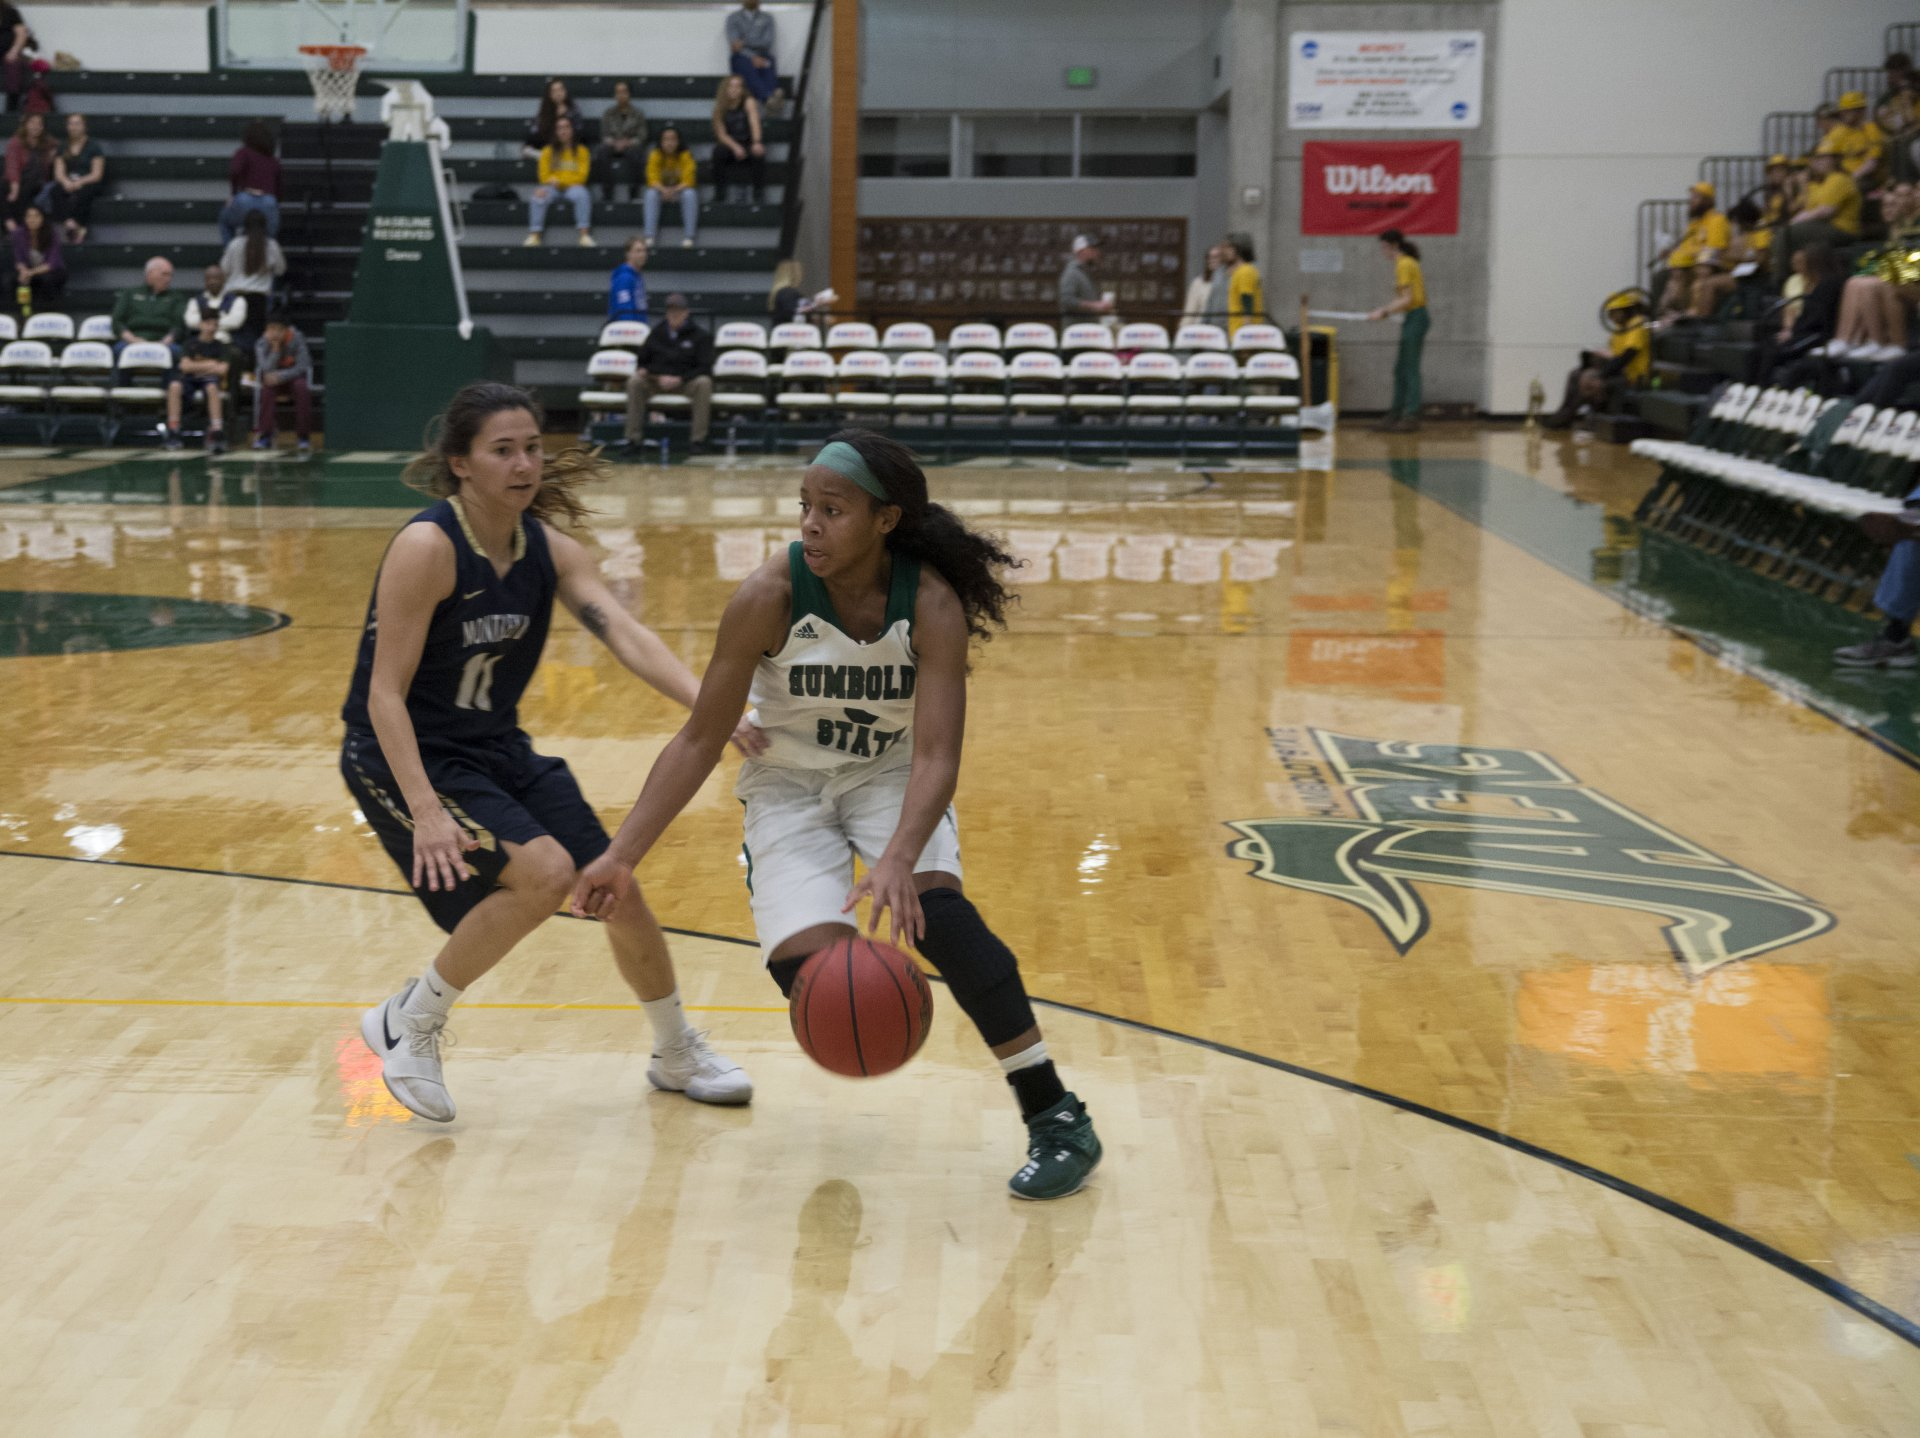 Tyra Turner (3) dribbles past Aubri Smith (11) in the Lumberjack Arena on Feb. 3. Photo by Zac Sibek.